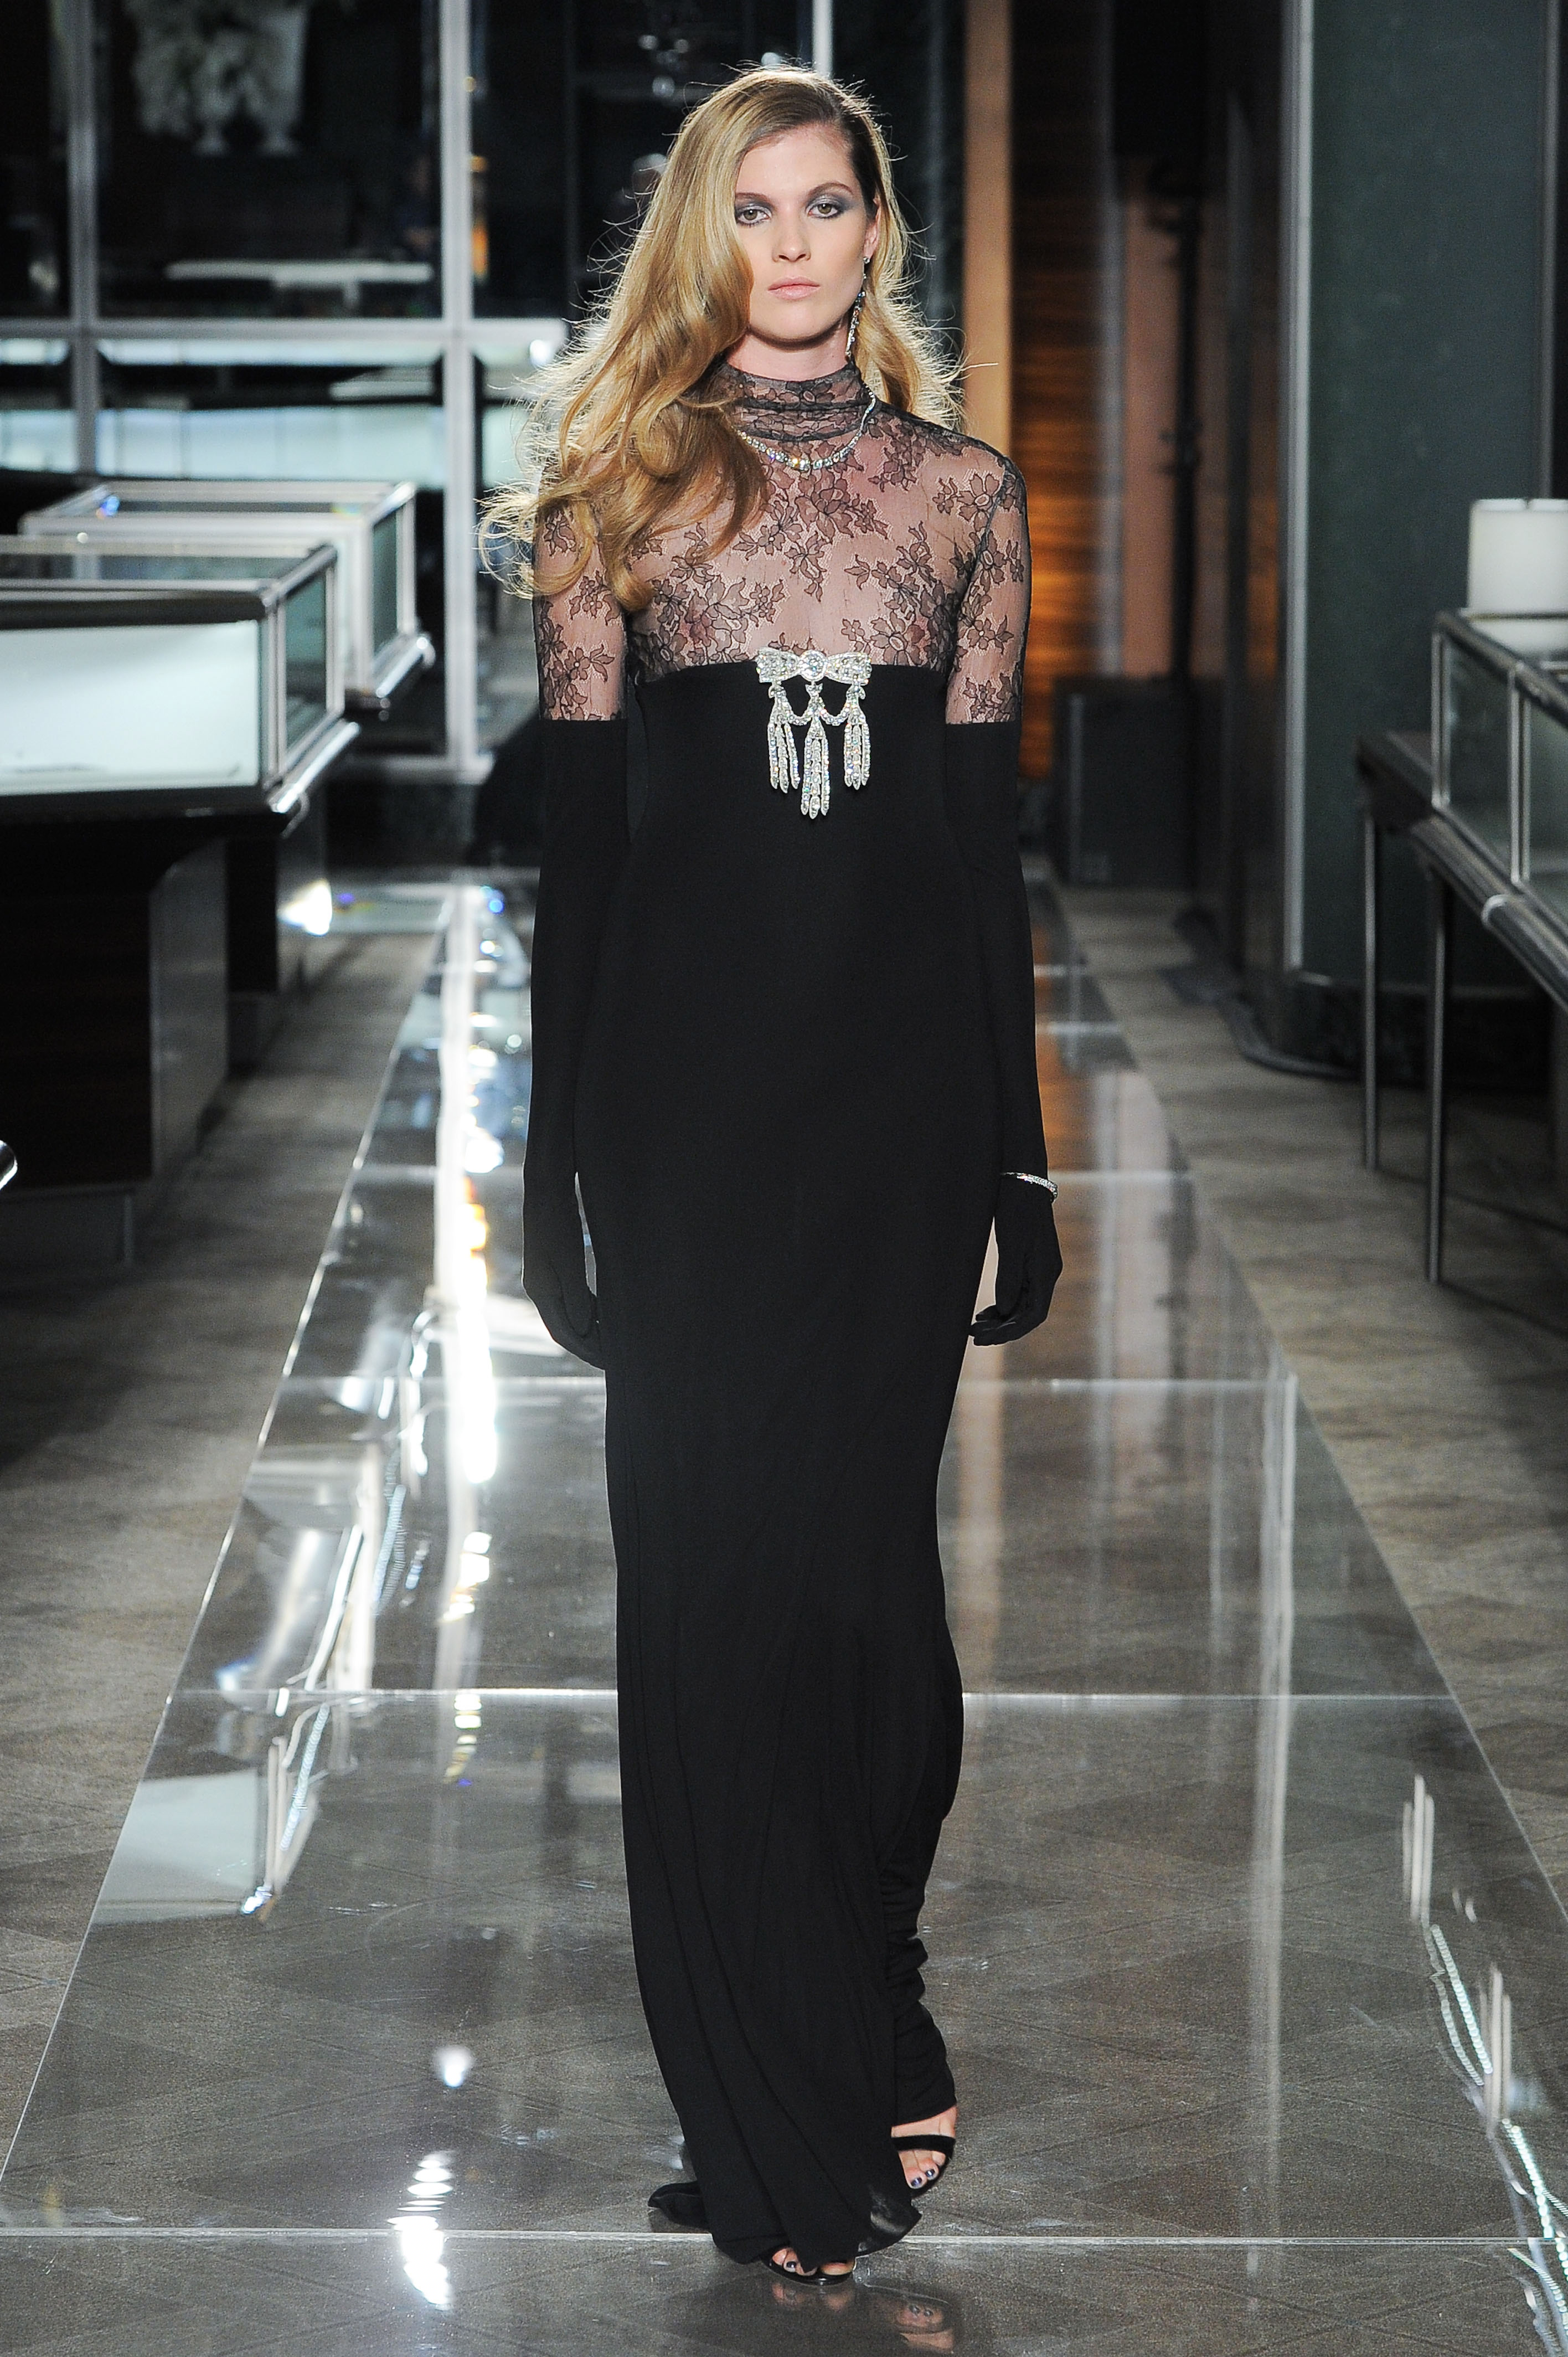 reem acra spring 2018 black wedding dress with lace